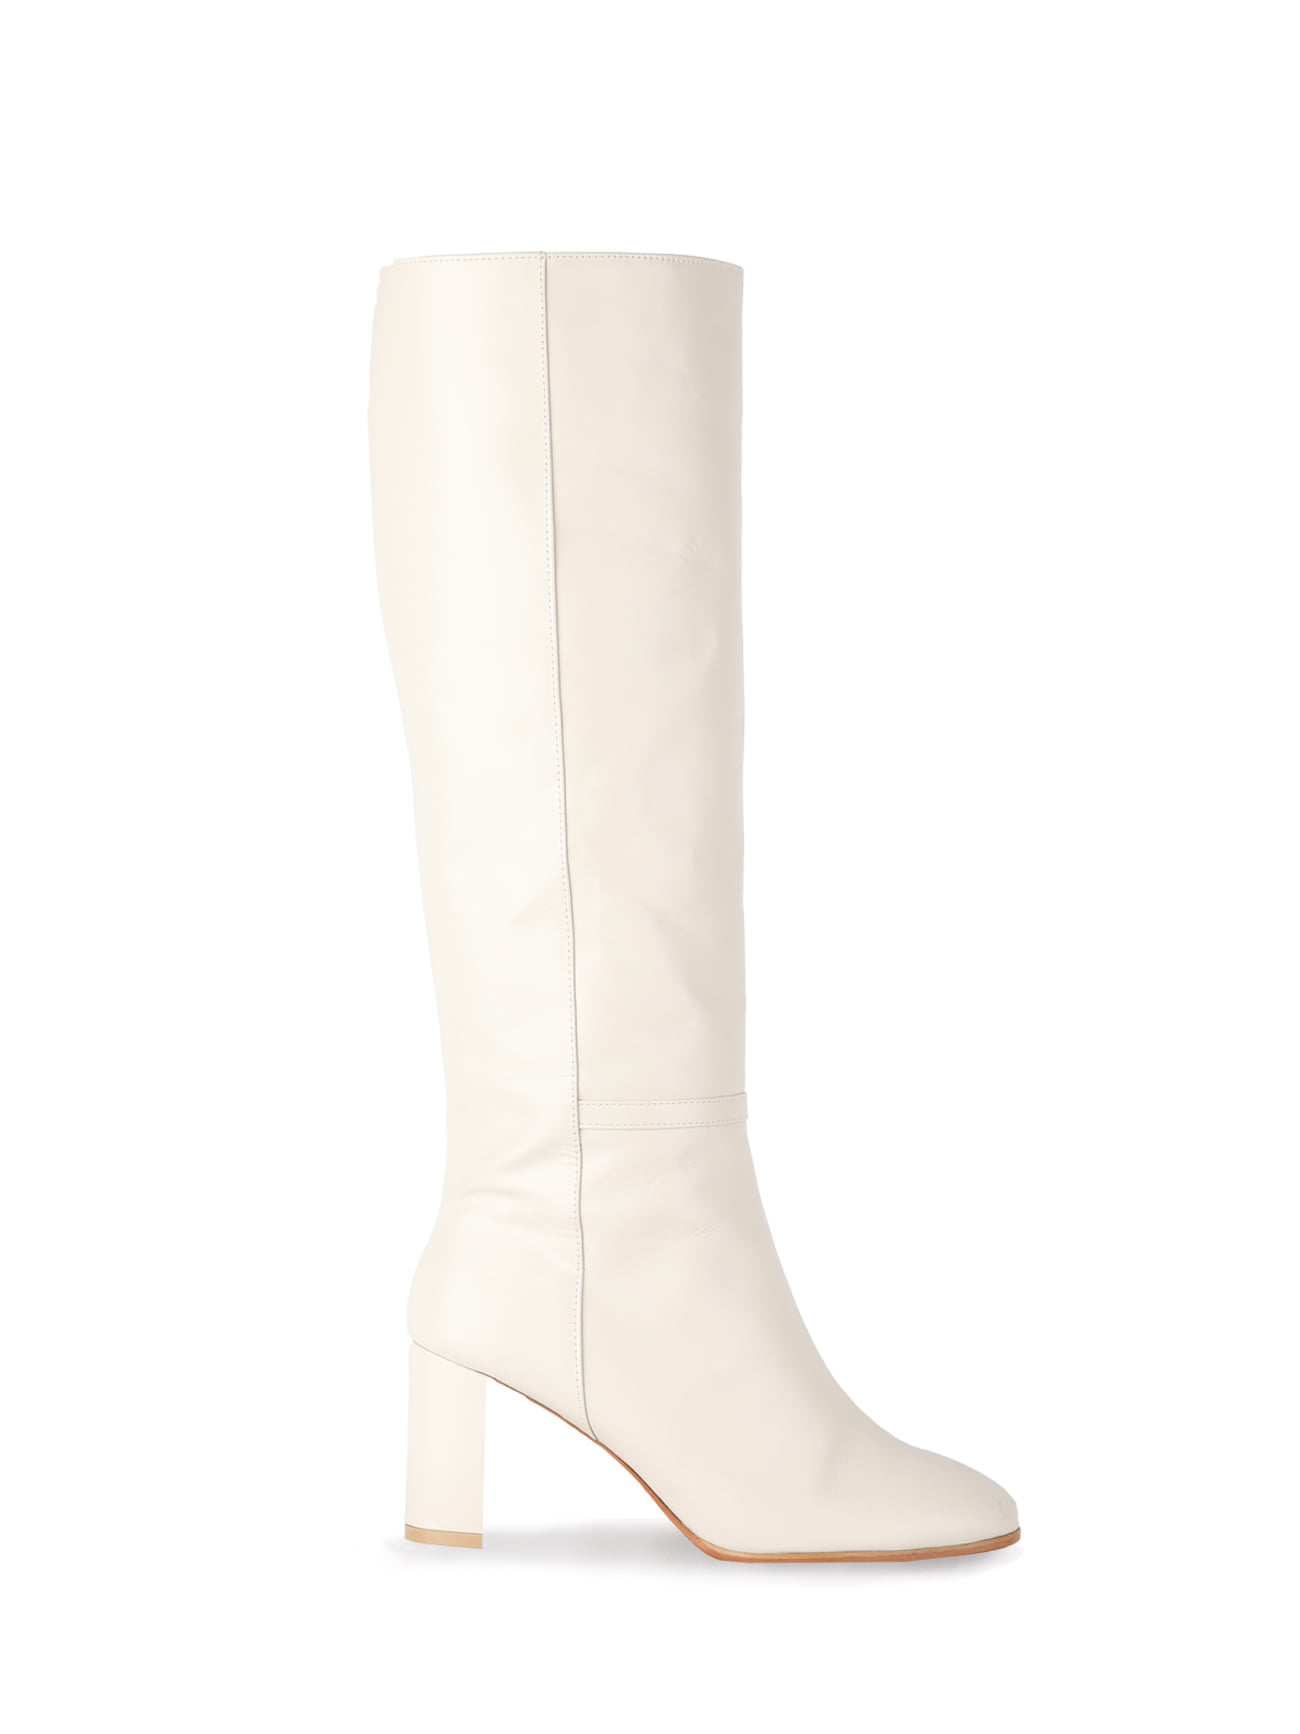 KATE LEATHER KNEE BOOTS (7cm) - IVORY